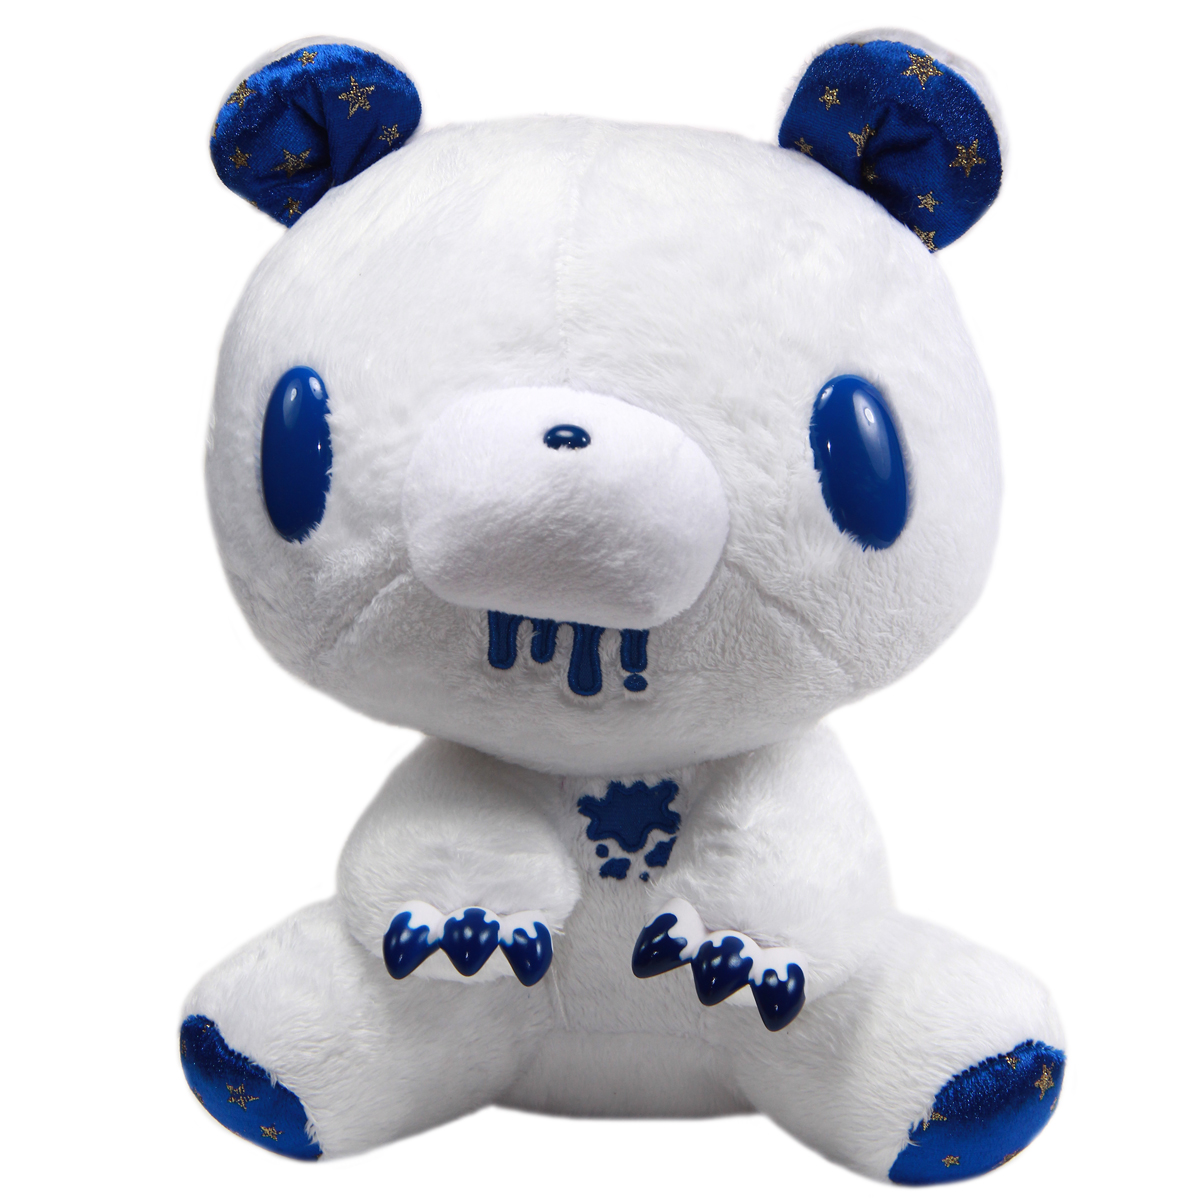 Taito Starry Edition Gloomy Bear Plush Doll White GP #528 12 Inches